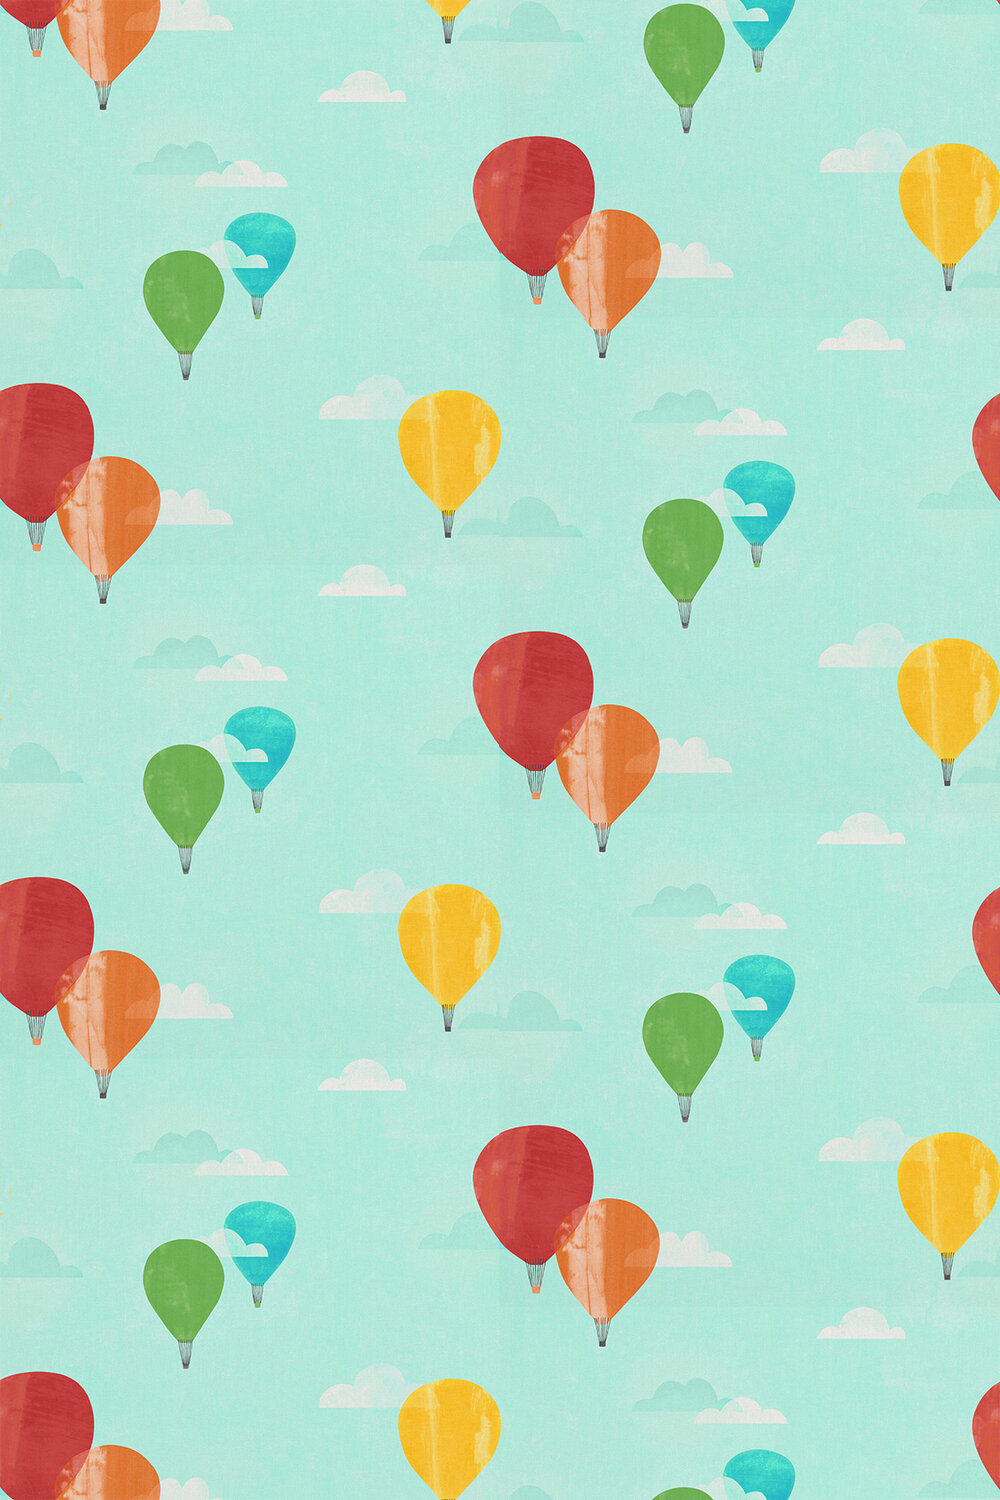 And Away We Go! Fabric - Poppy / Sky / Pineapple - by Harlequin